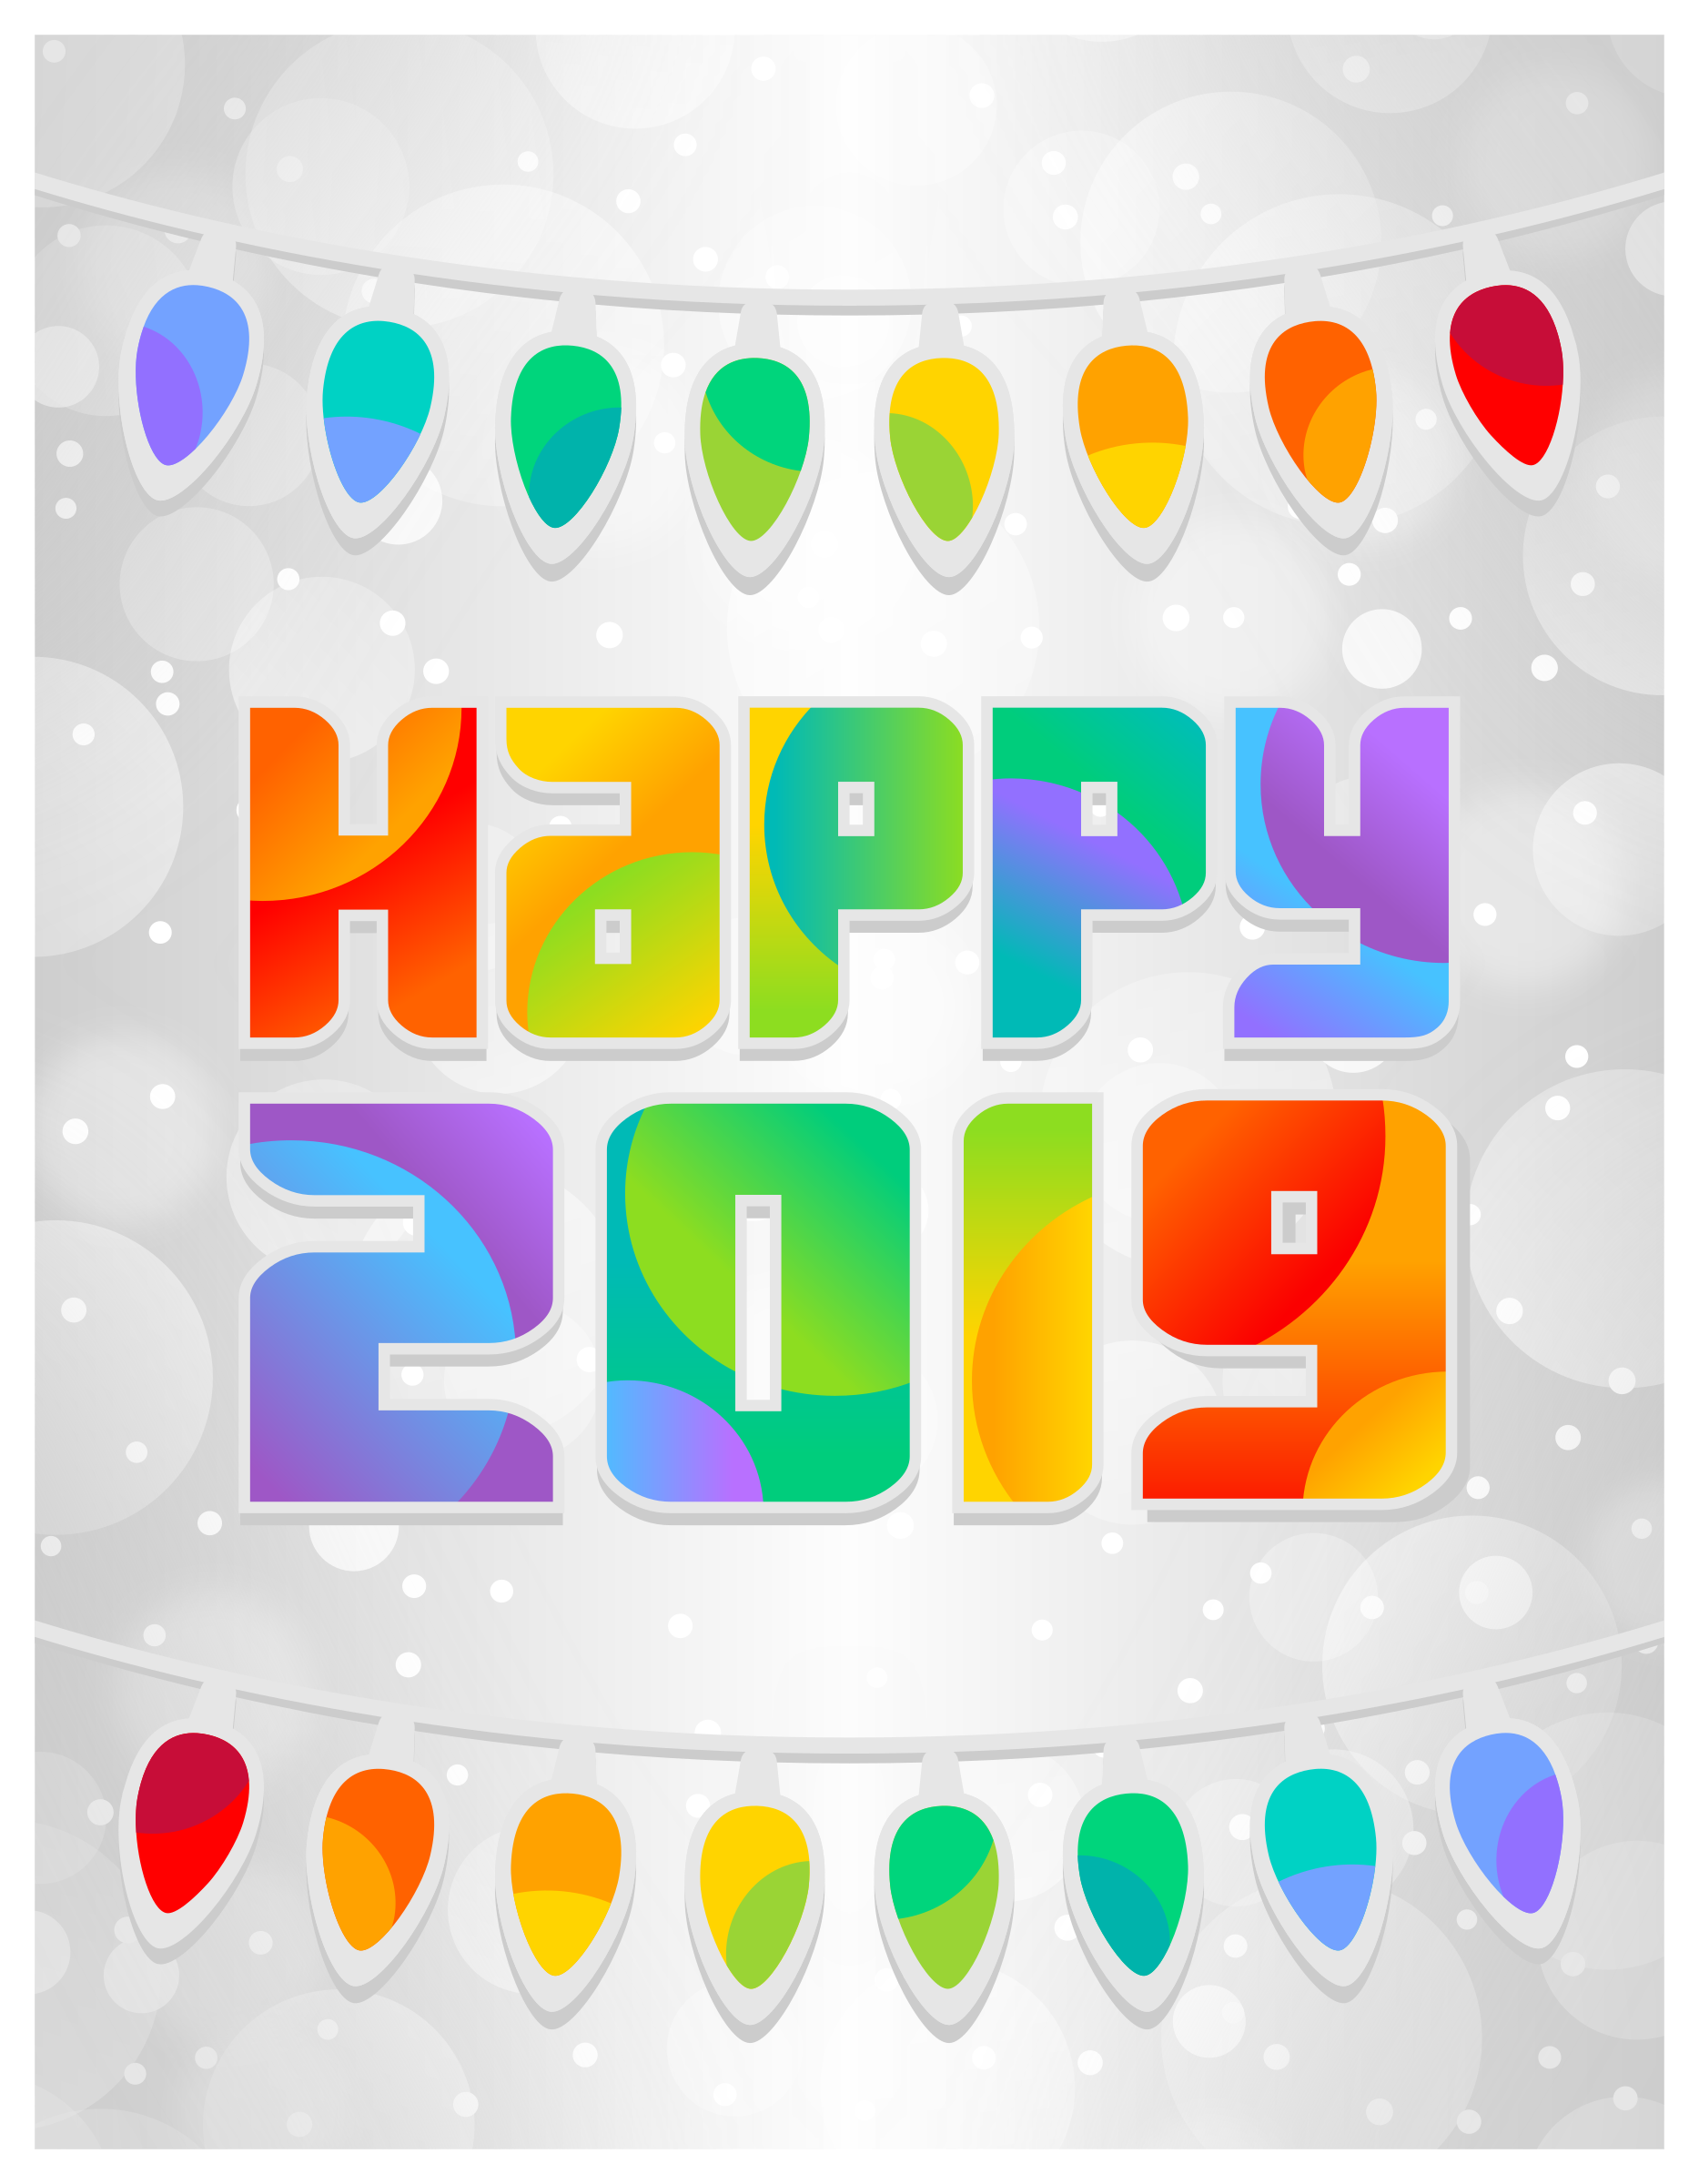 Happy New Year Clipart 2019 For Print New Year Greeting Cards Merry Christmas And Happy New Year New Year Greetings